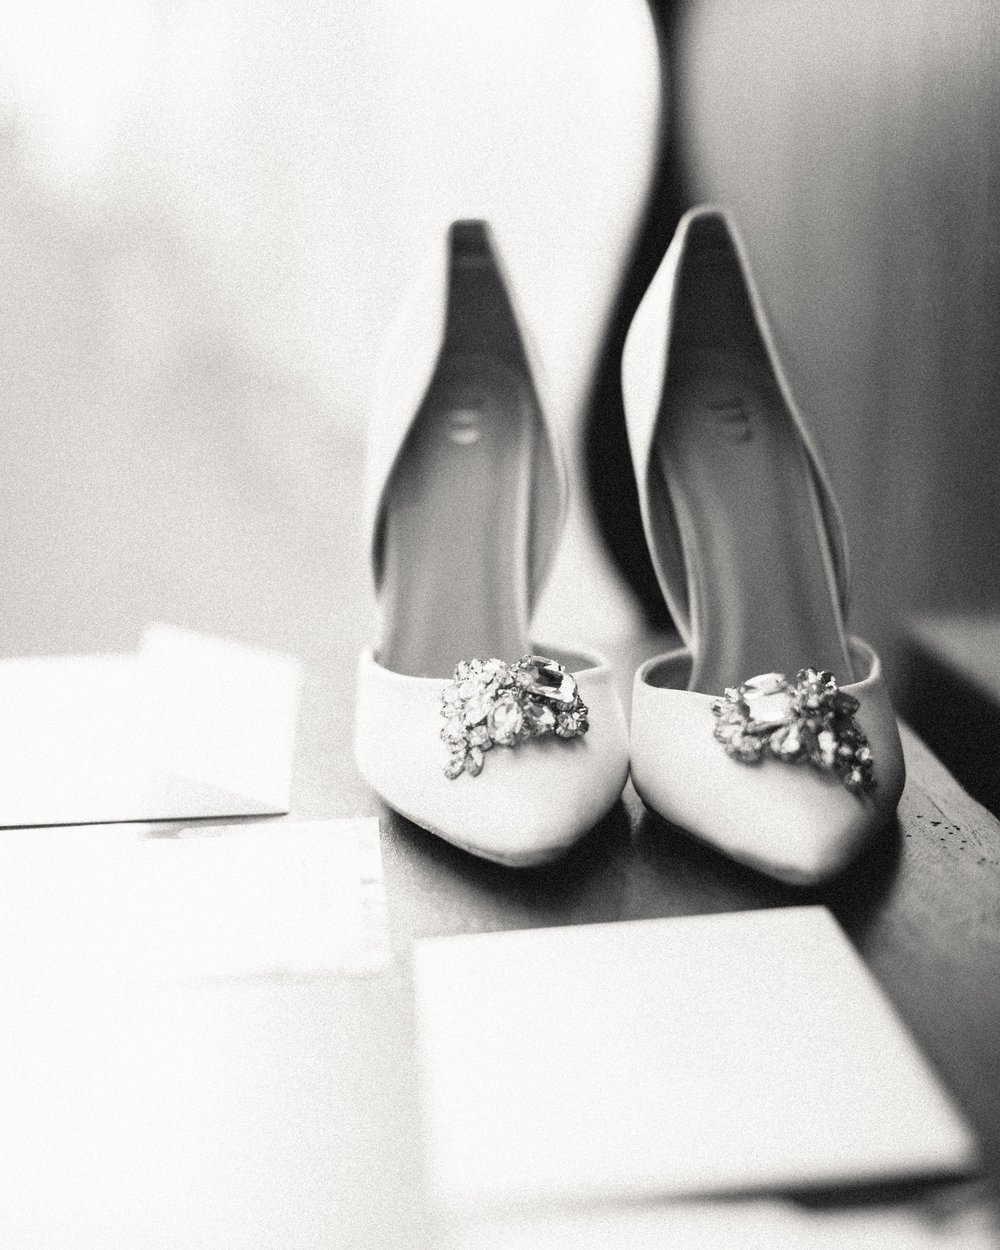 WEDDING TIPS FROM A WEDDING PHOTOGRAPHER - L I F E . S T Y L E D .